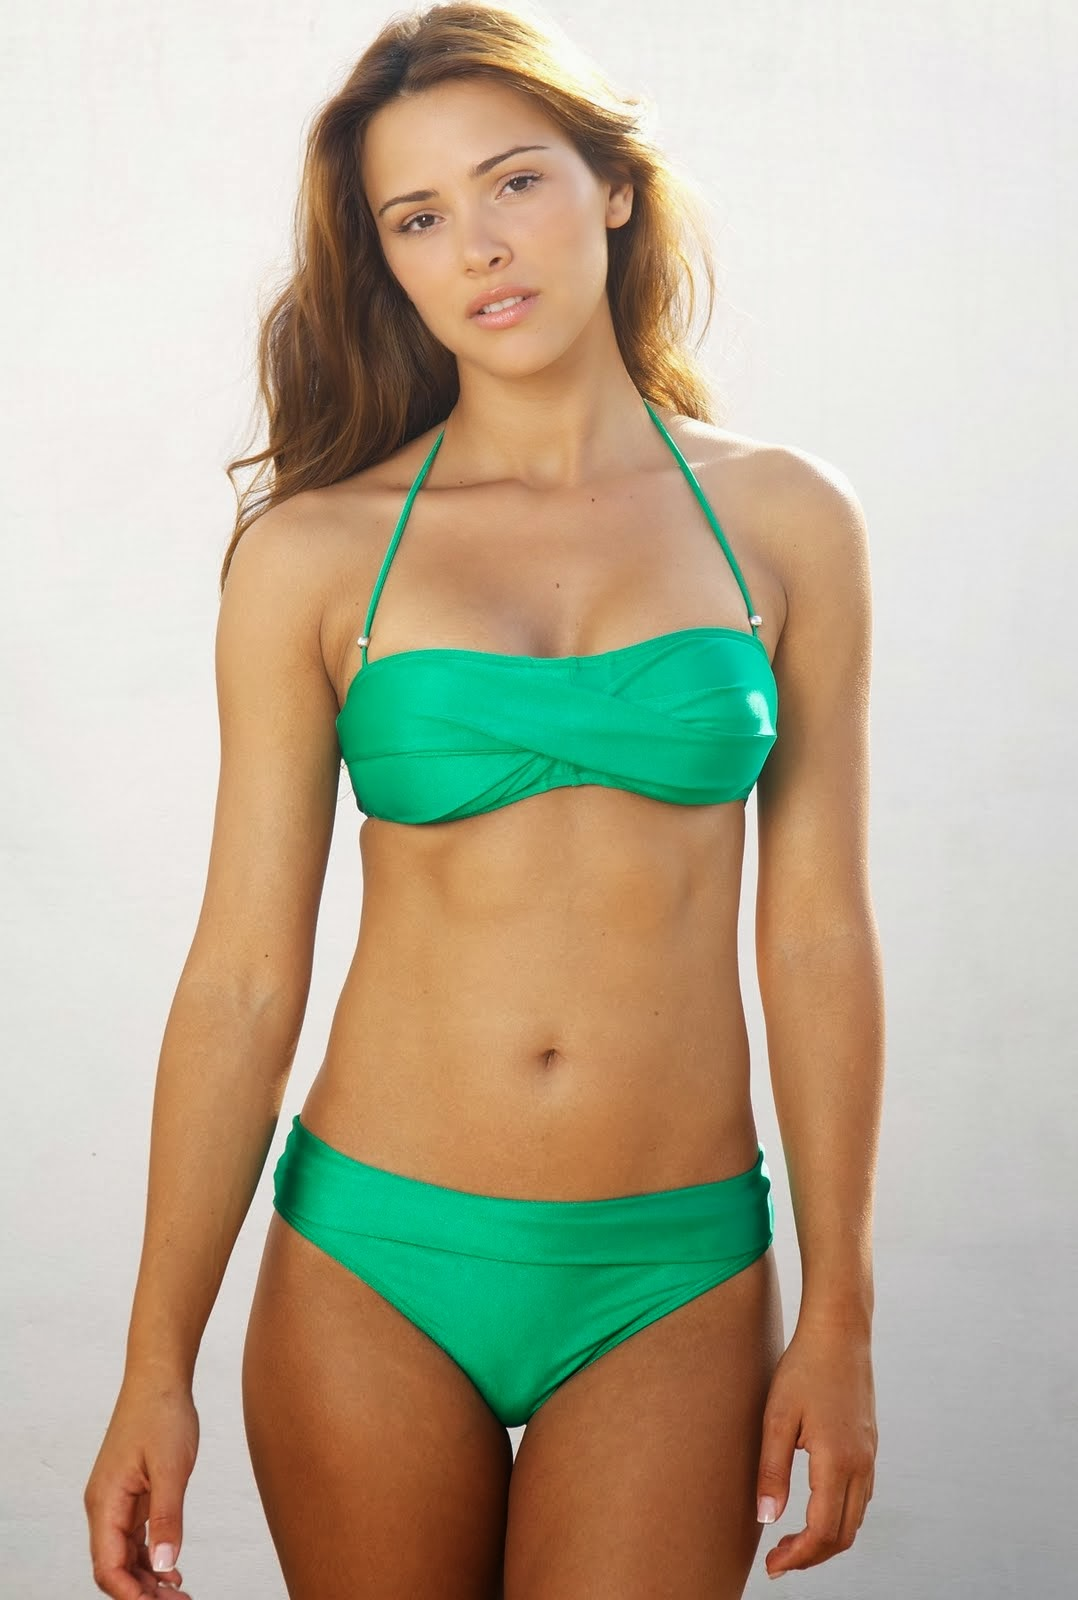 Best bikini model